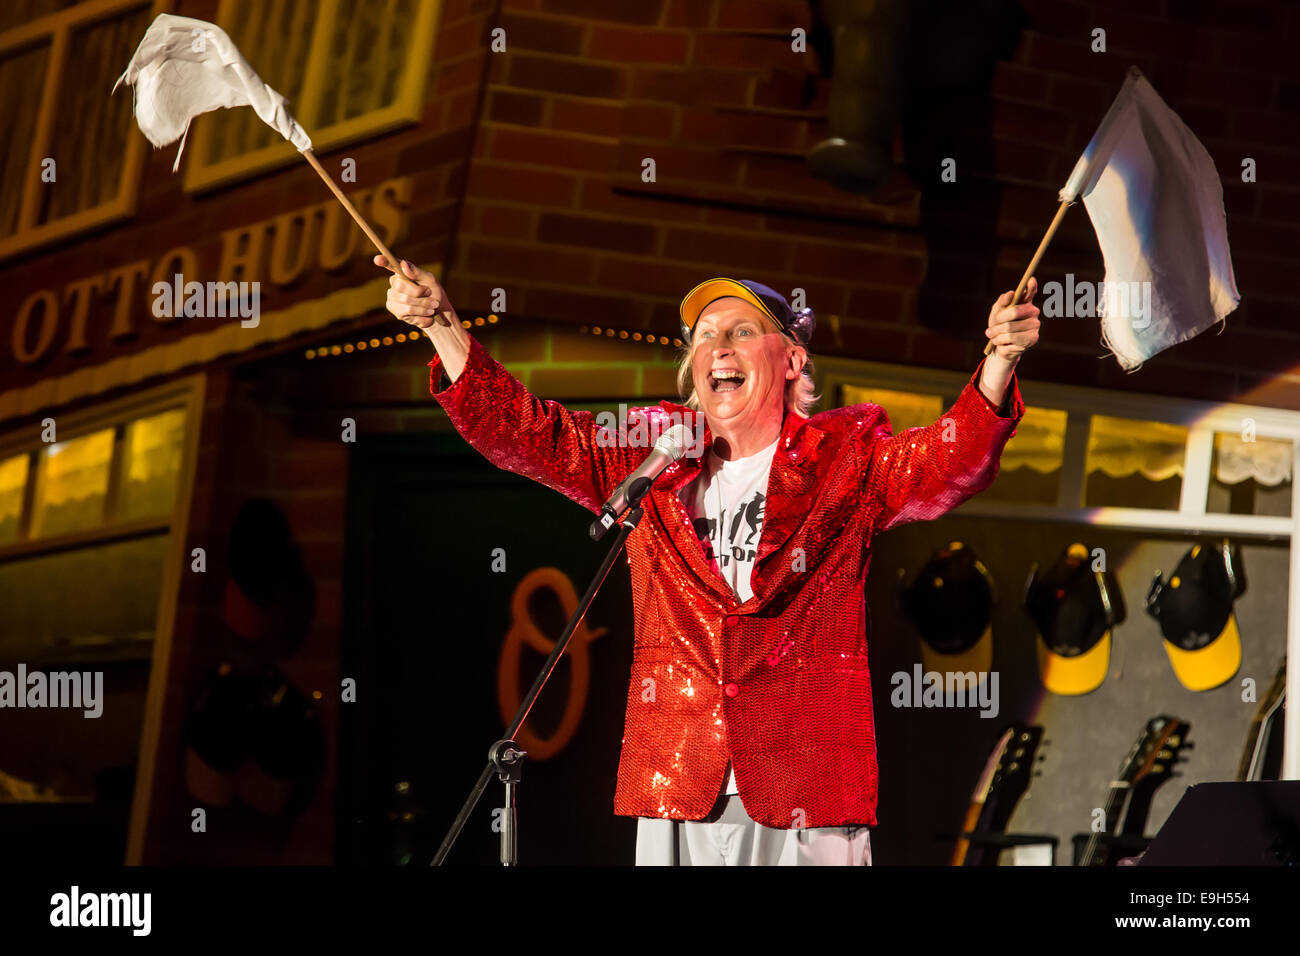 The German comedian Otto Waalkes performing live at the Stadthalle festival hall, Sursee, Canton of Lucerne, Switzerland - Stock Image